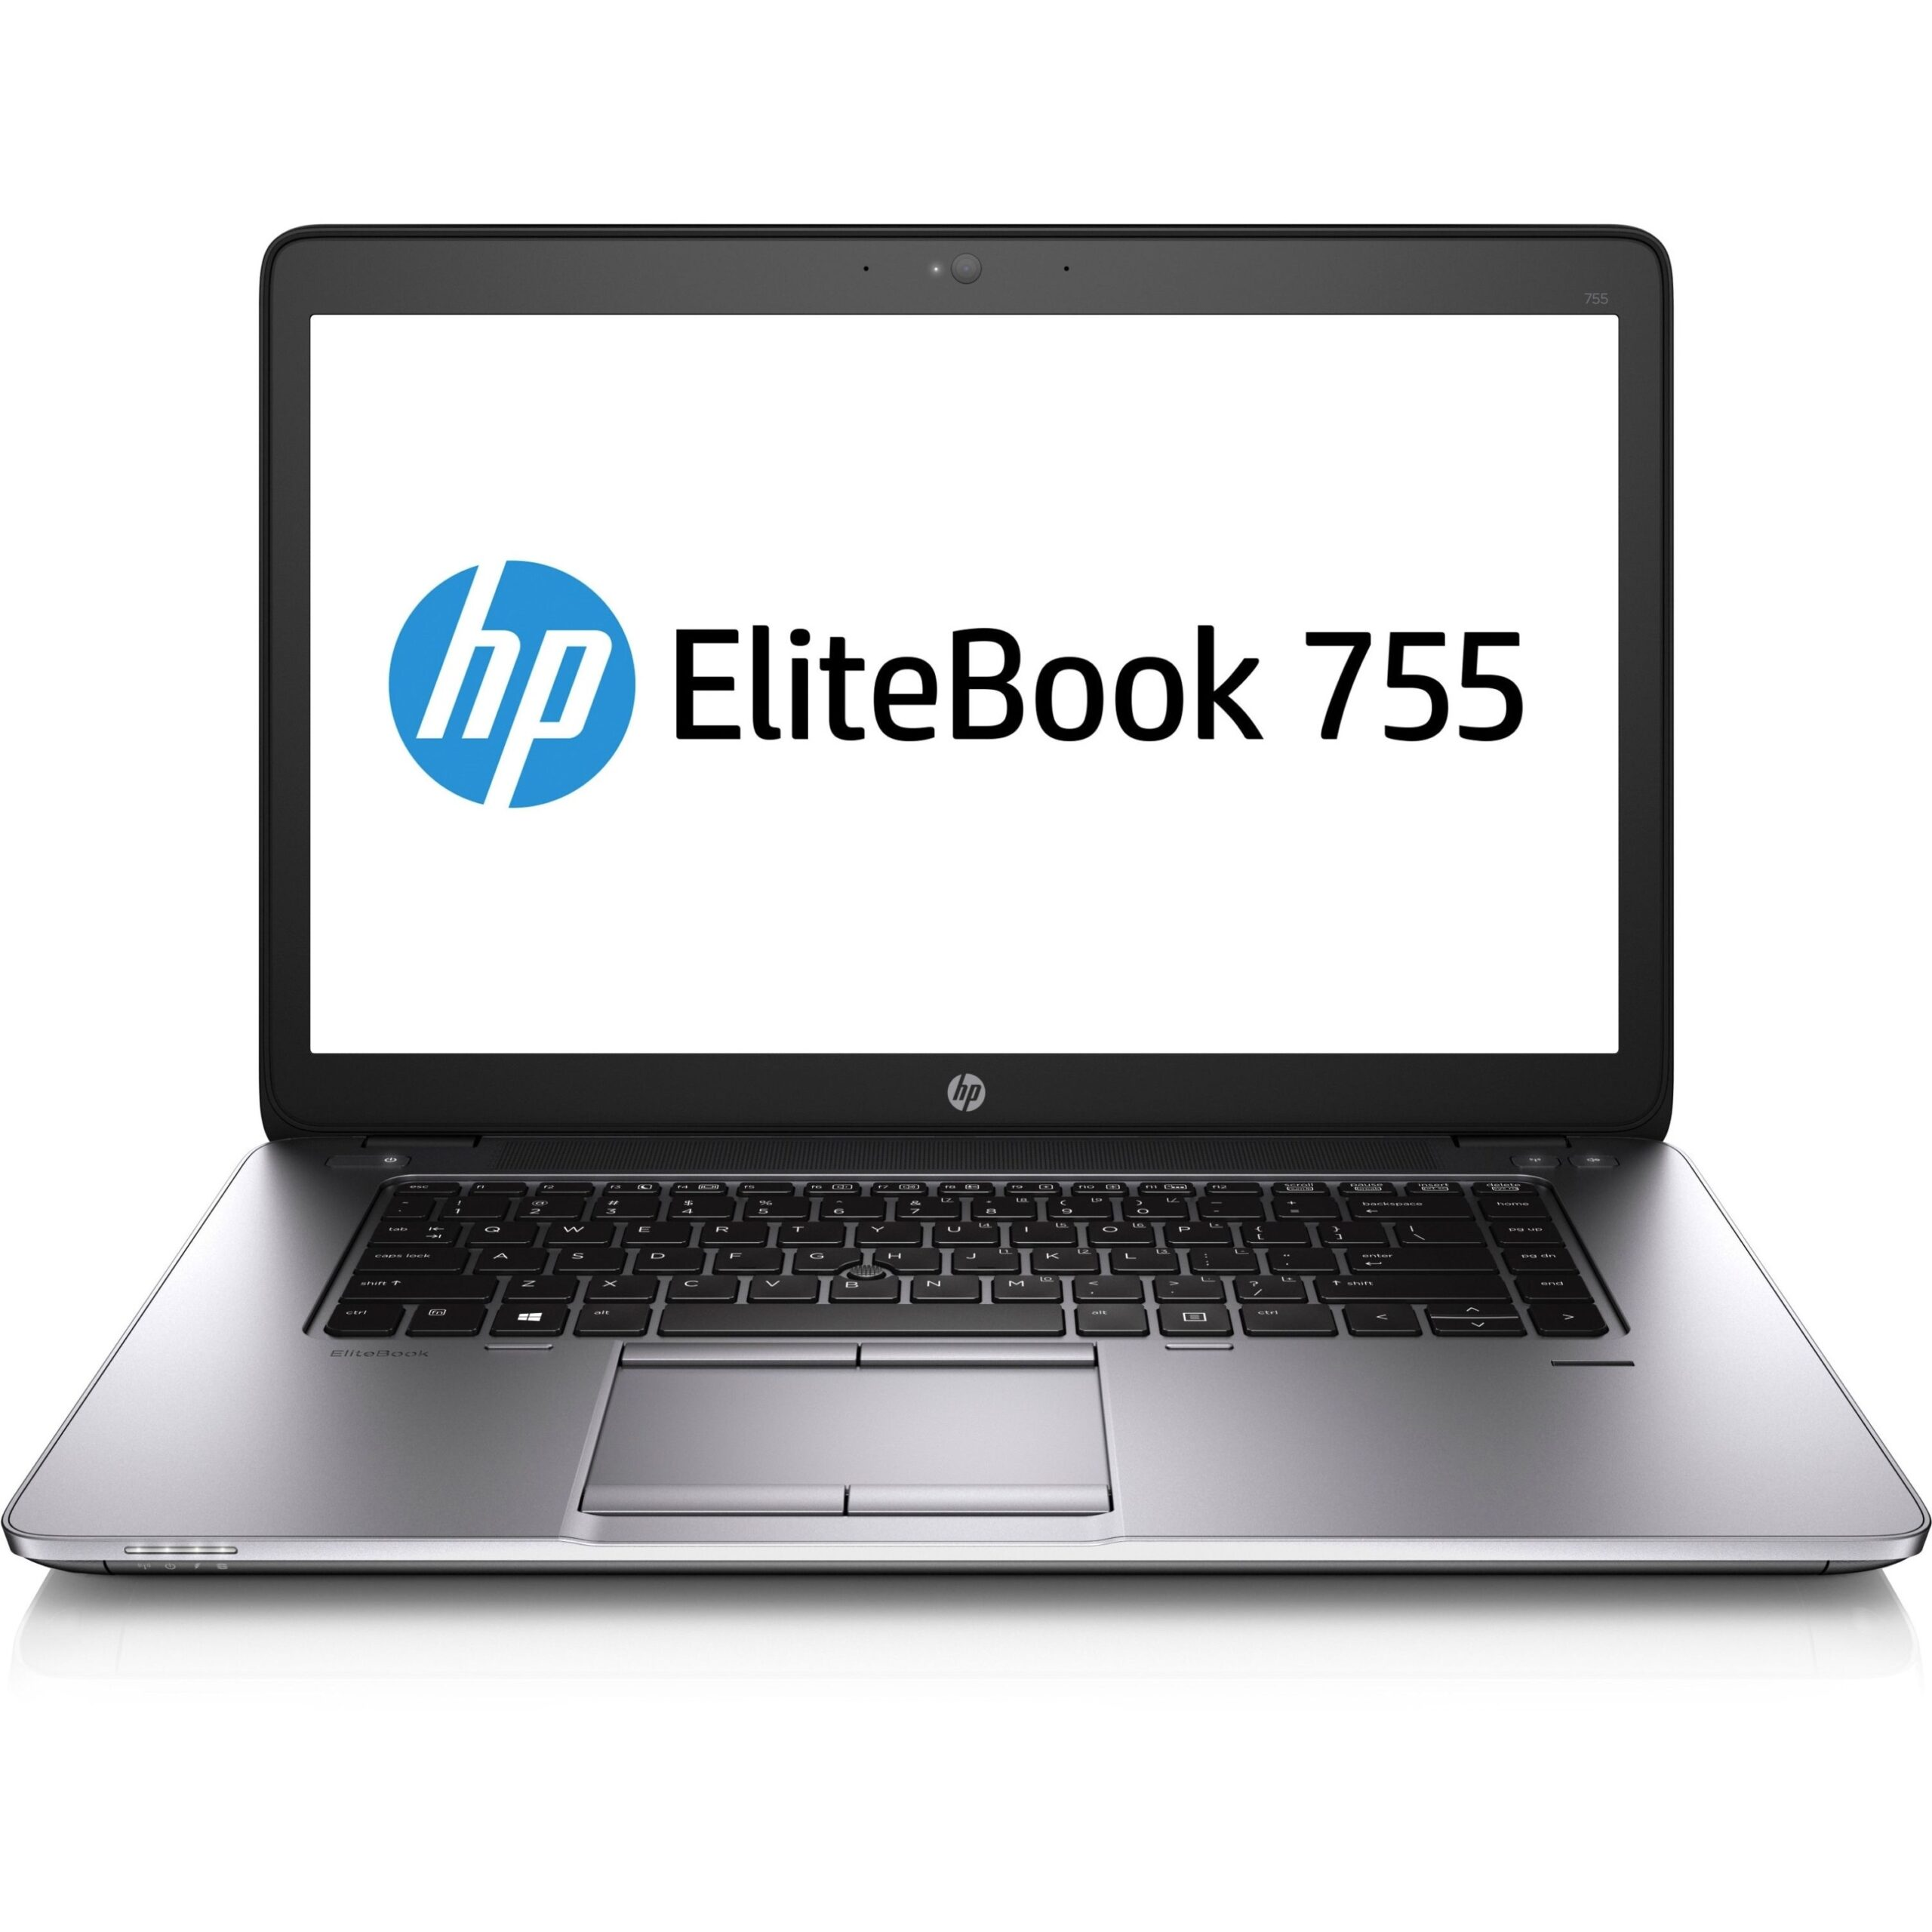 LAPTOP HP ELITEBOOK 755 G2 REFURBISHED